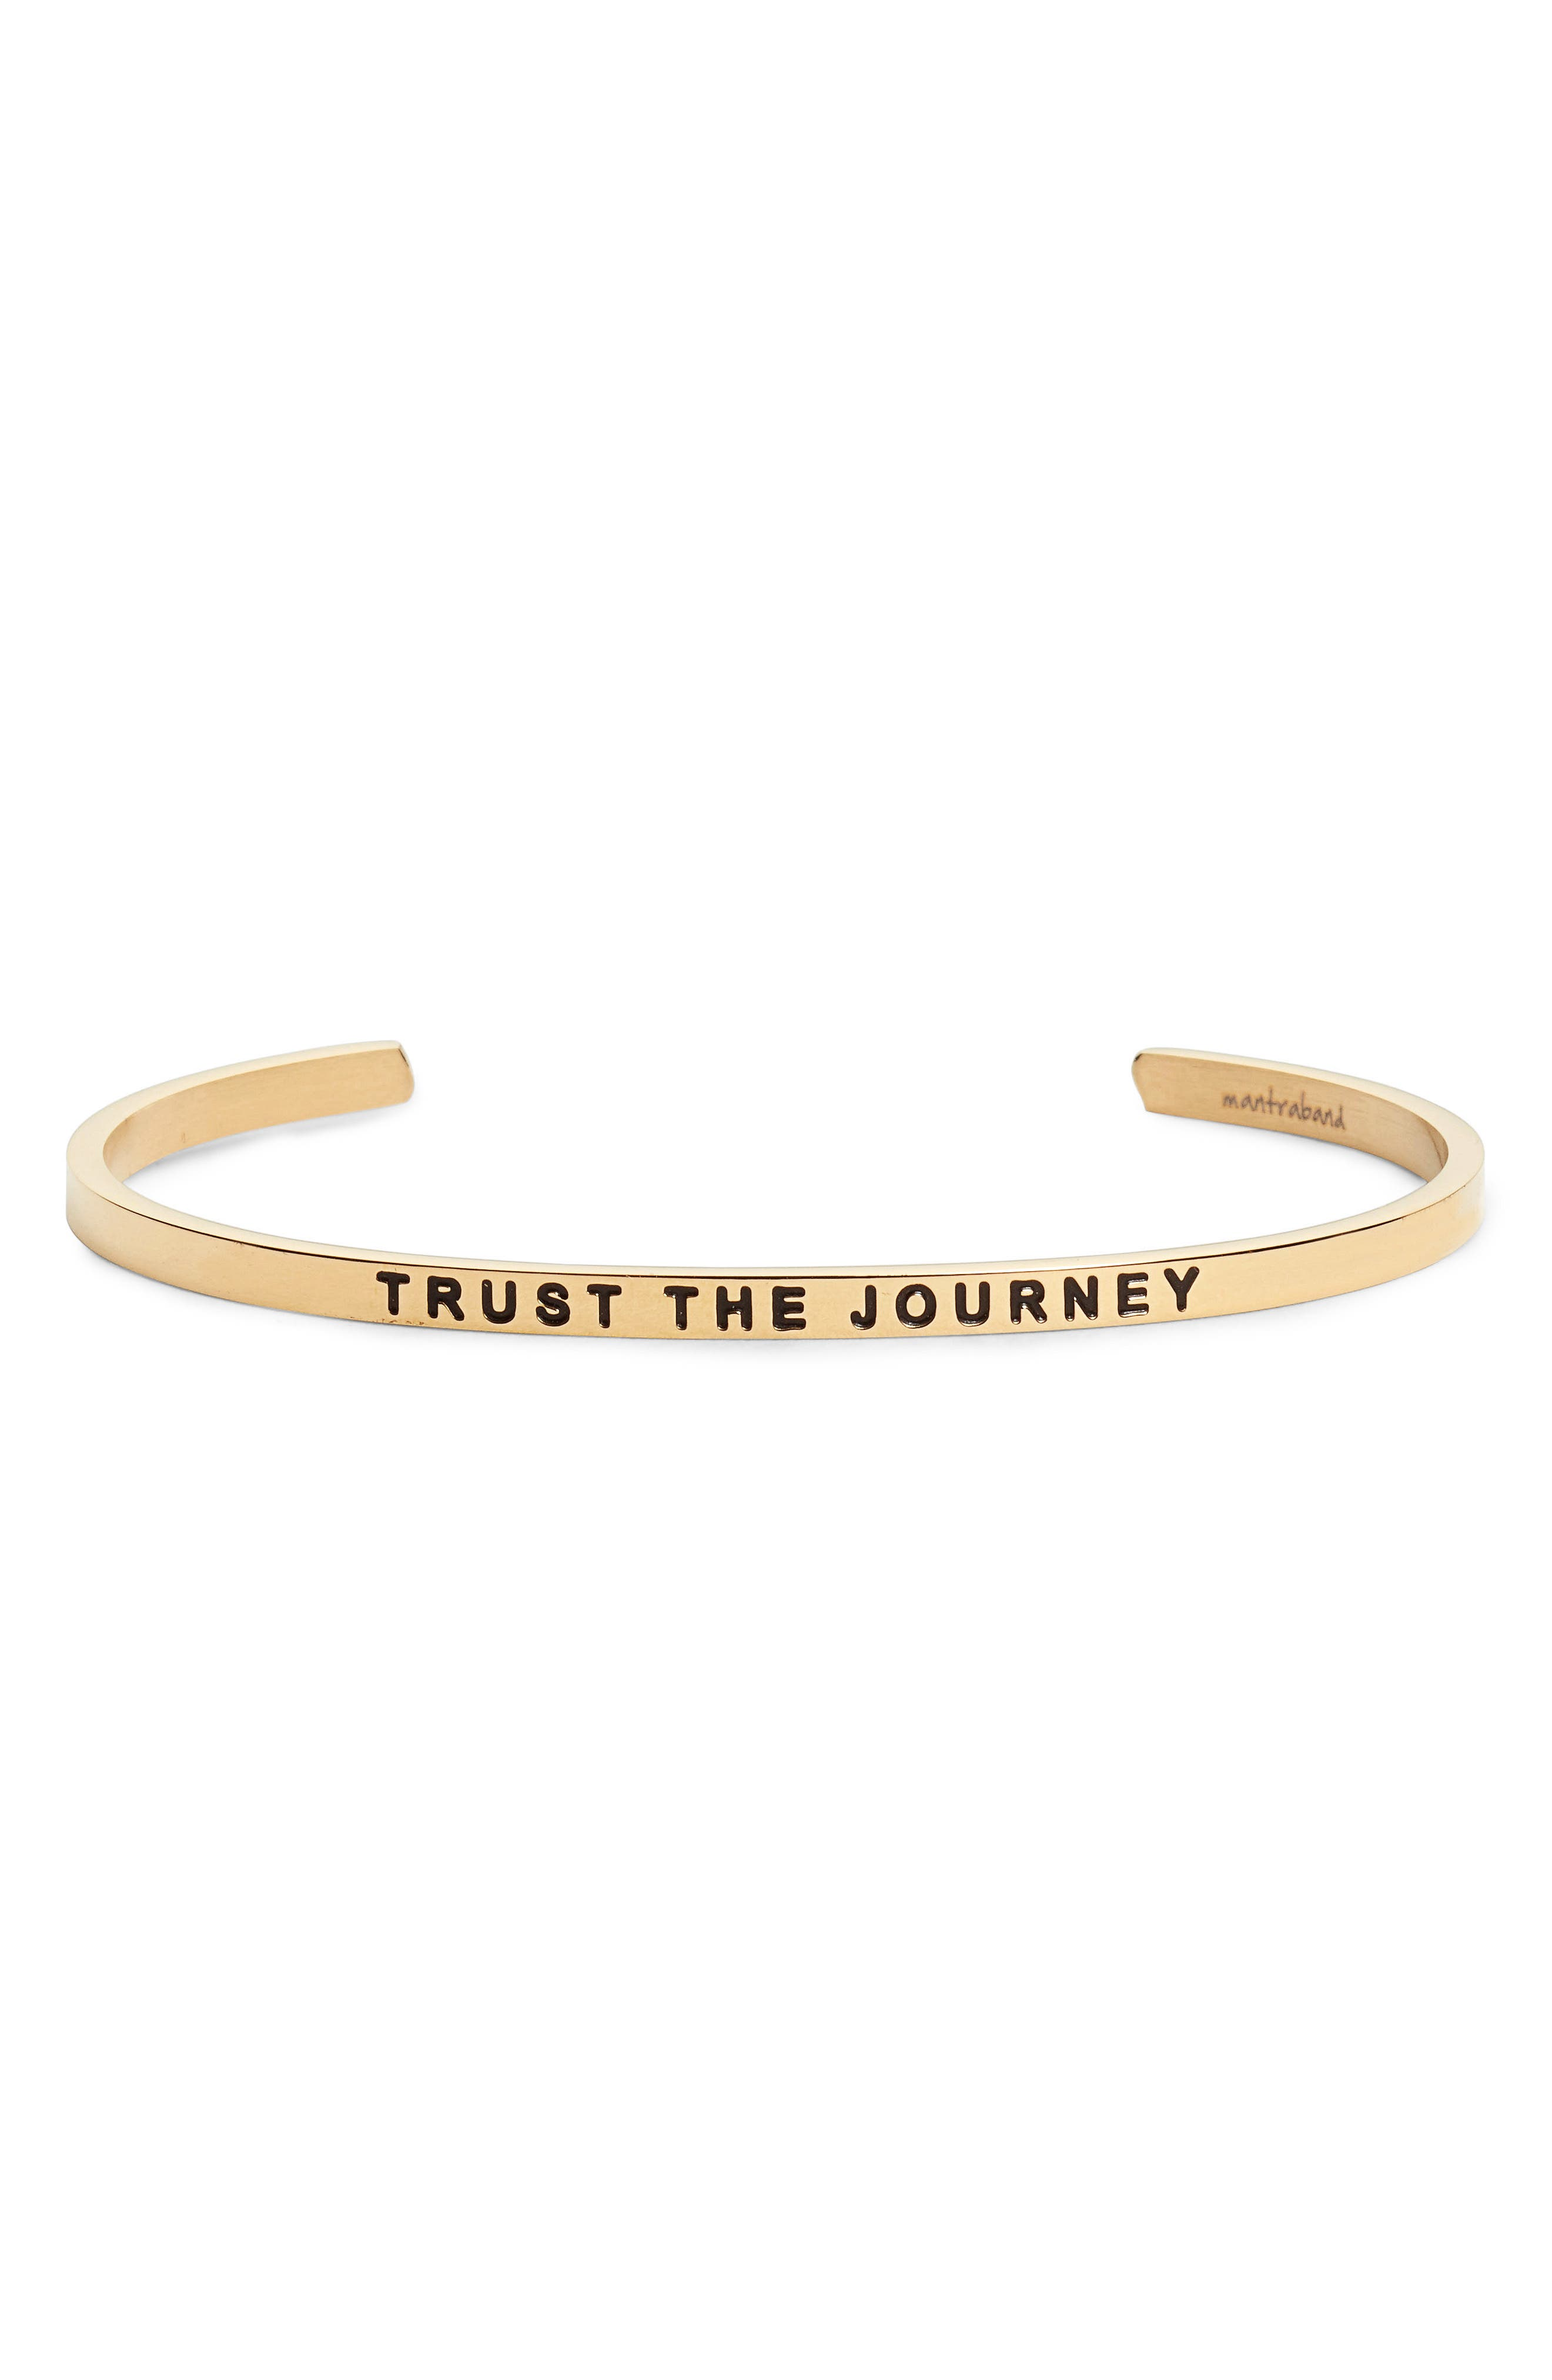 Trust the Journey Cuff,                             Main thumbnail 1, color,                             Gold